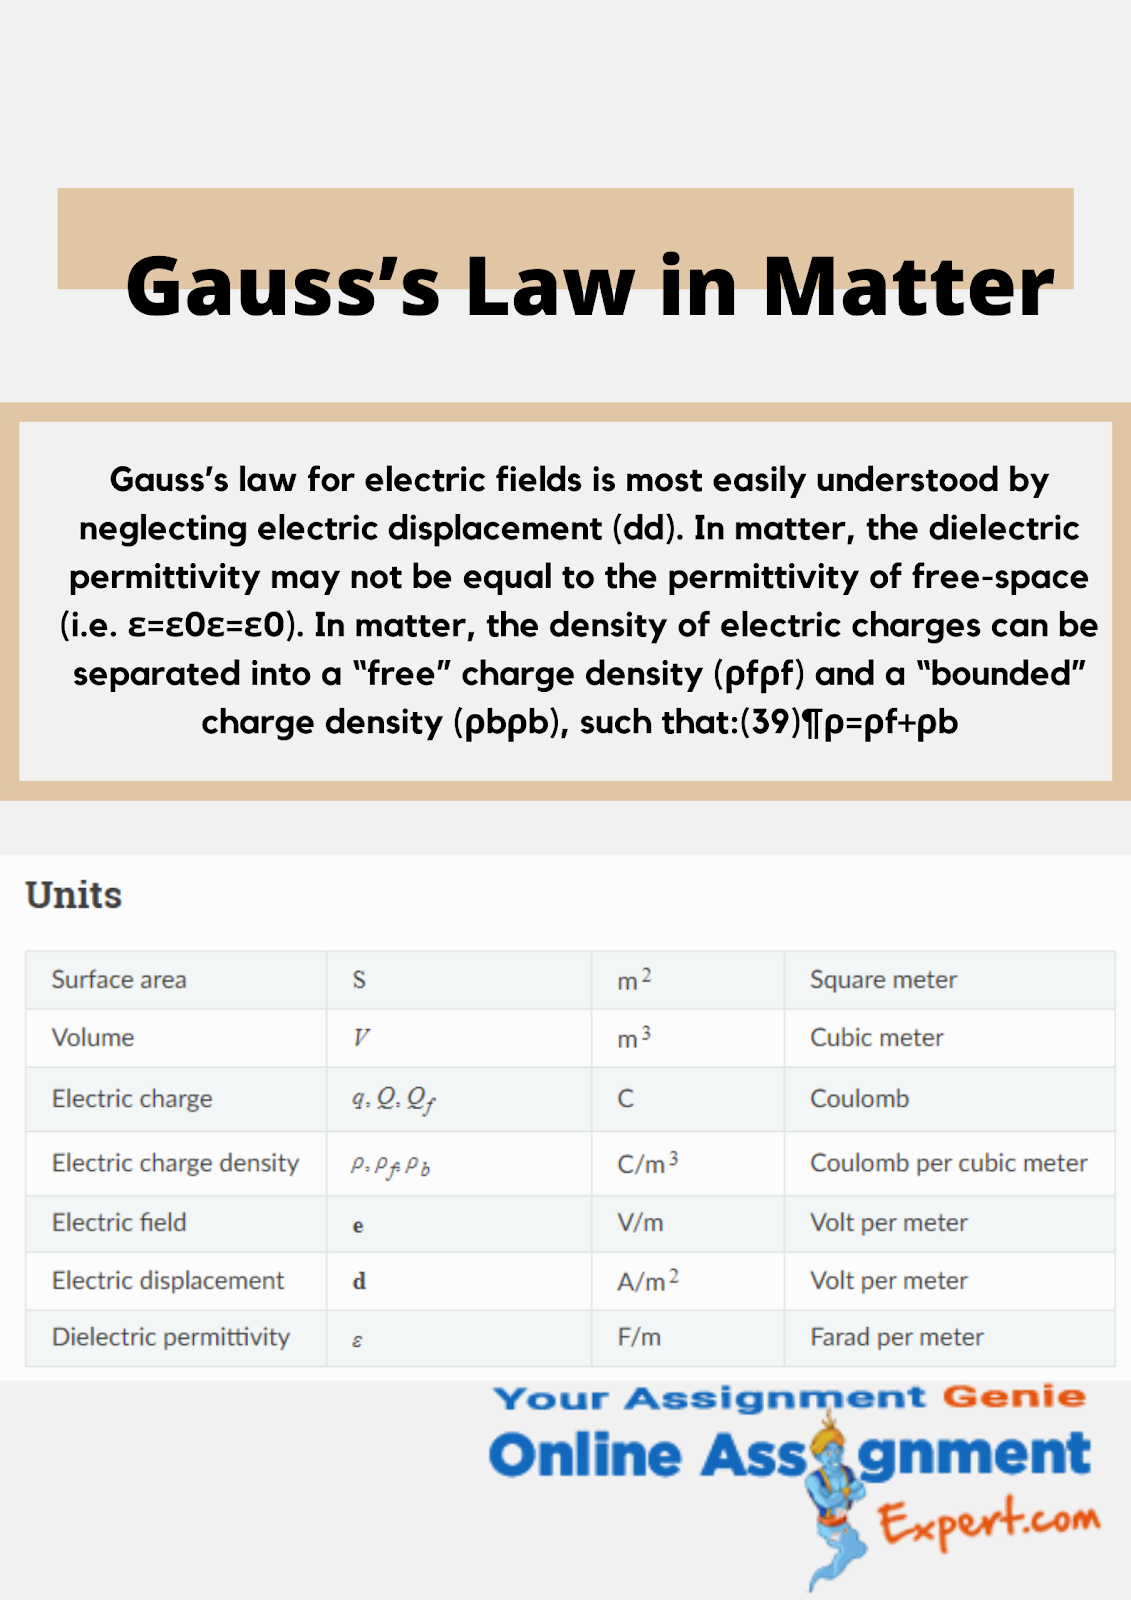 gausss law assignment help